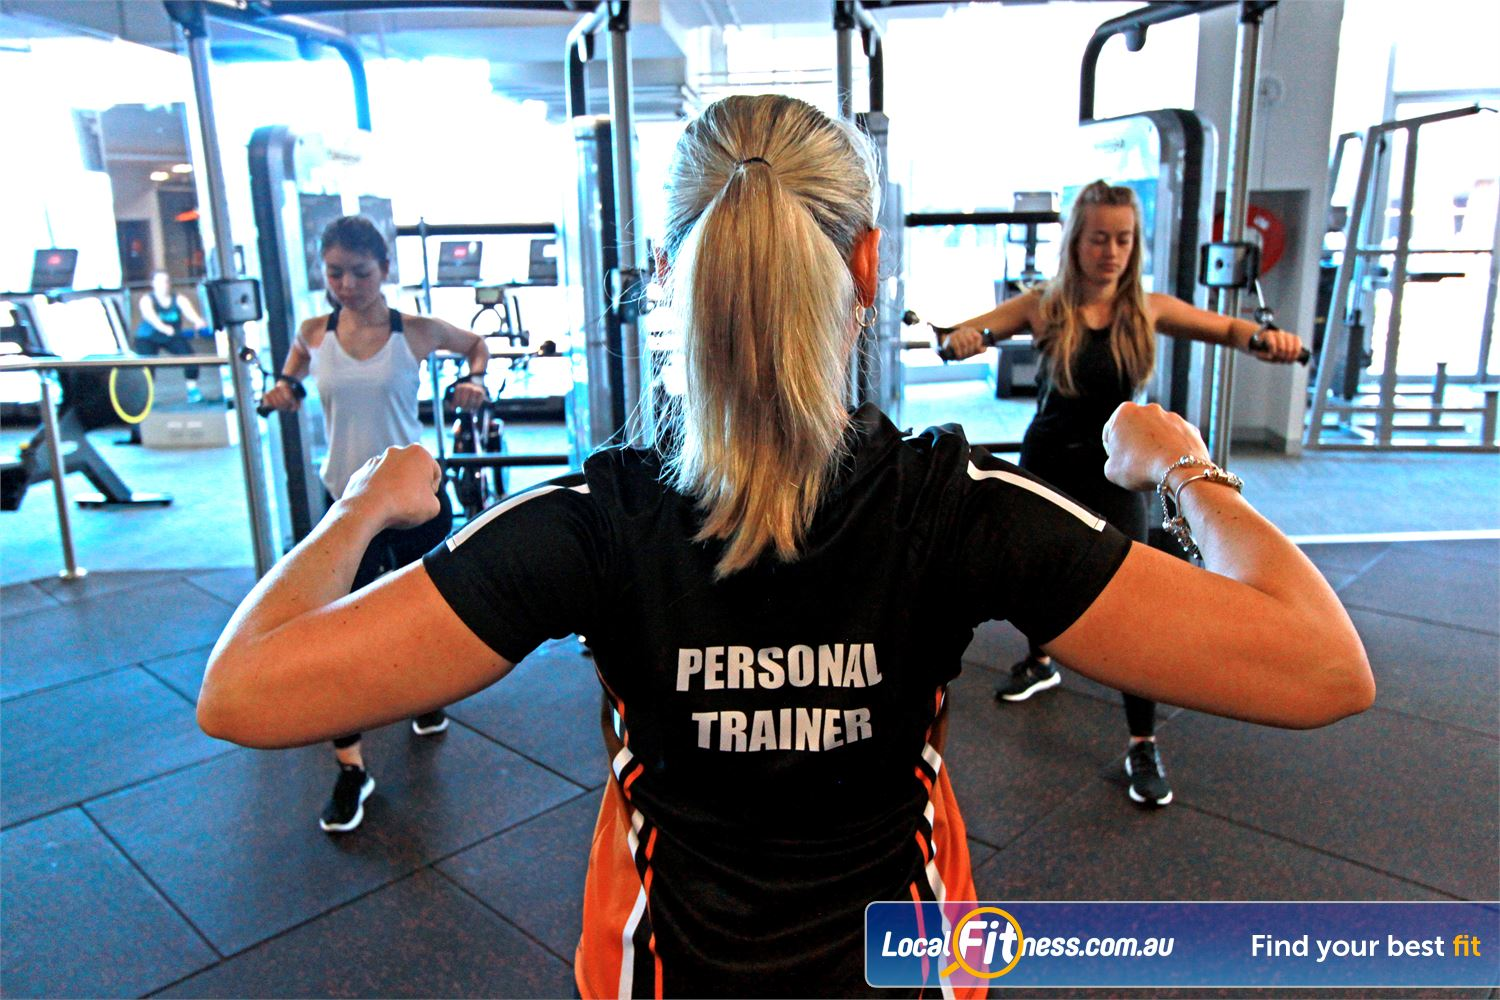 South Pacific Health Clubs Near Mordialloc Get the game plan for success with Mentone personal training.